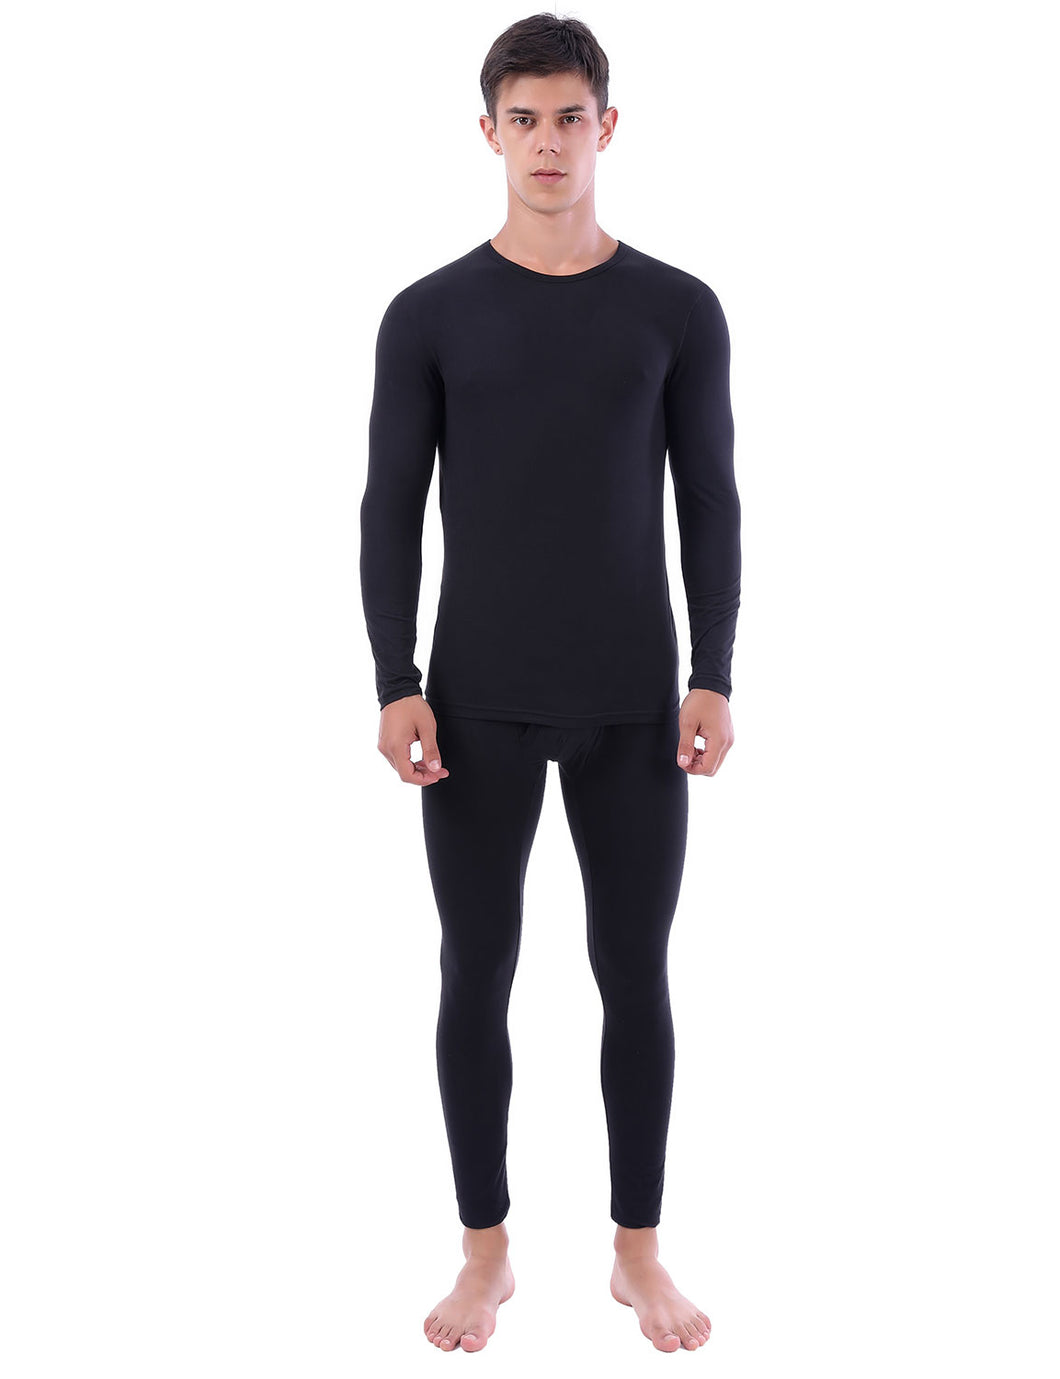 Mens Thermal Underwear Set Soft Long Johns Crew Neck Tops & Bottoms